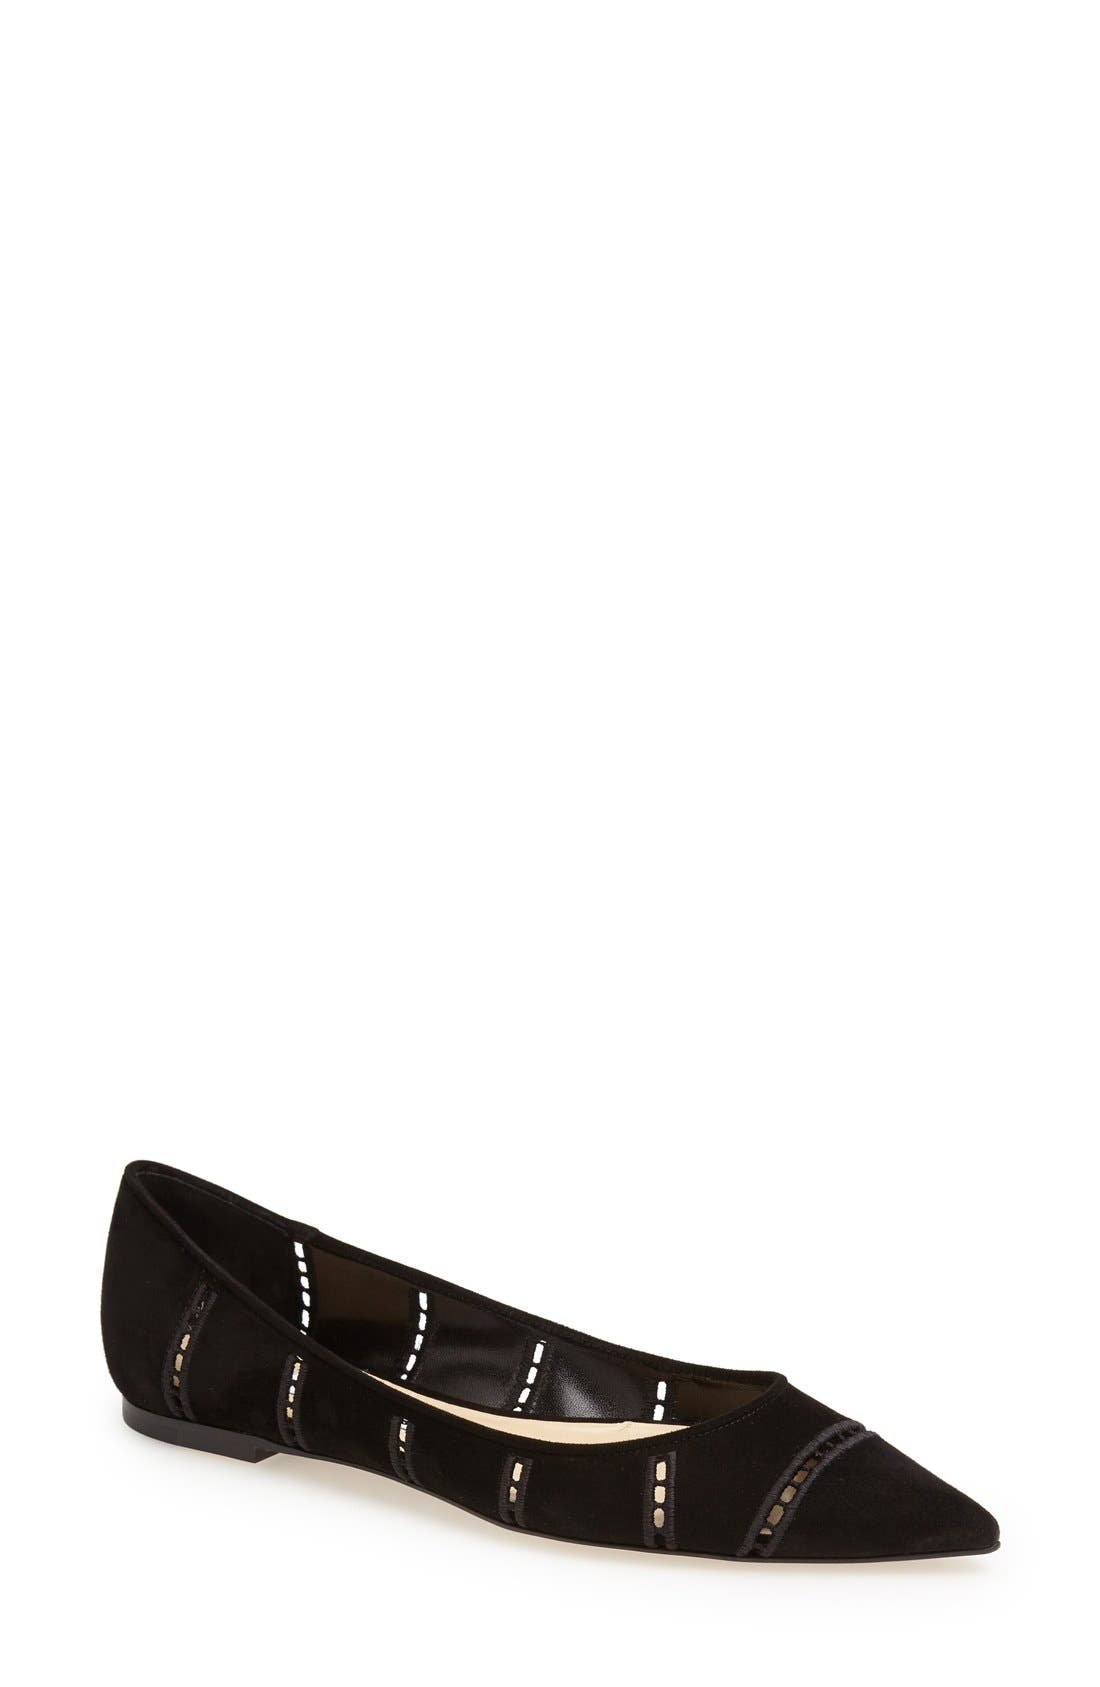 Alternate Image 1 Selected - Jimmy Choo 'Alina' Pointy Toe Perforated Broderie Anglaise Suede Flat (Women)